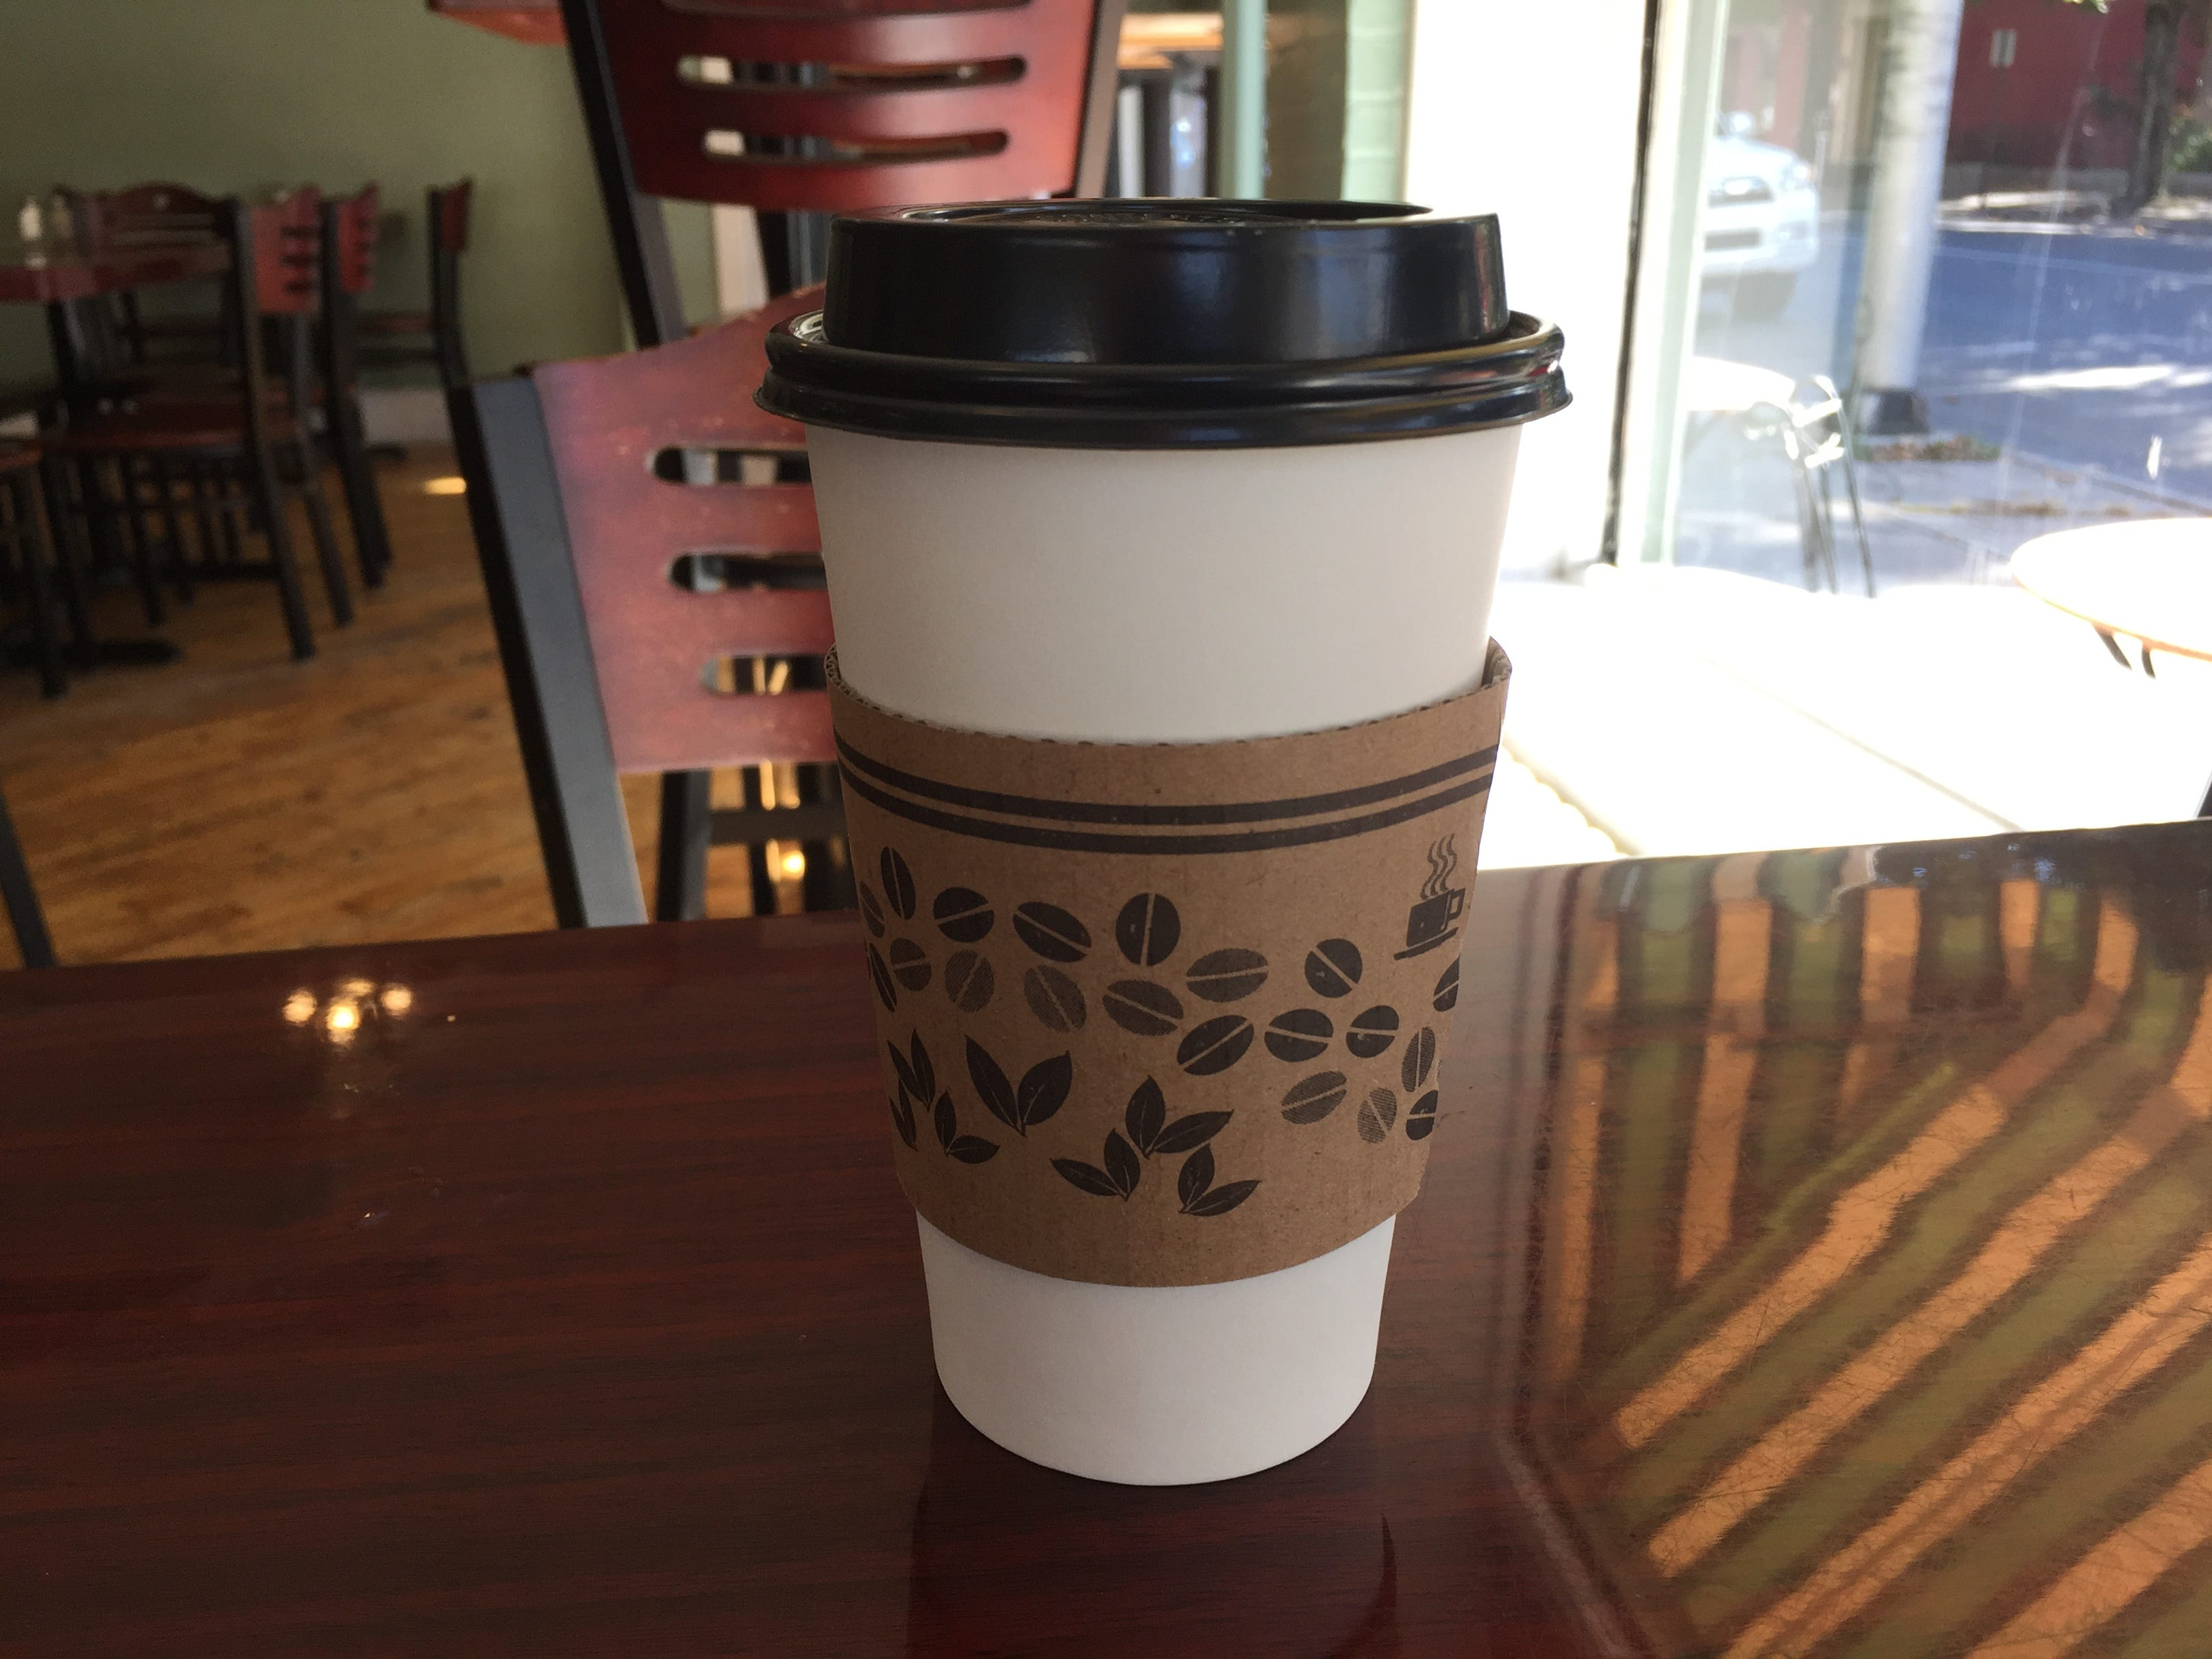 It seems like everybody does a coffee or latte, but All That has its own take on fall with a pumpkin spice chai that's out of this world. Pumpkin coffee and other seasonal flavors also available.